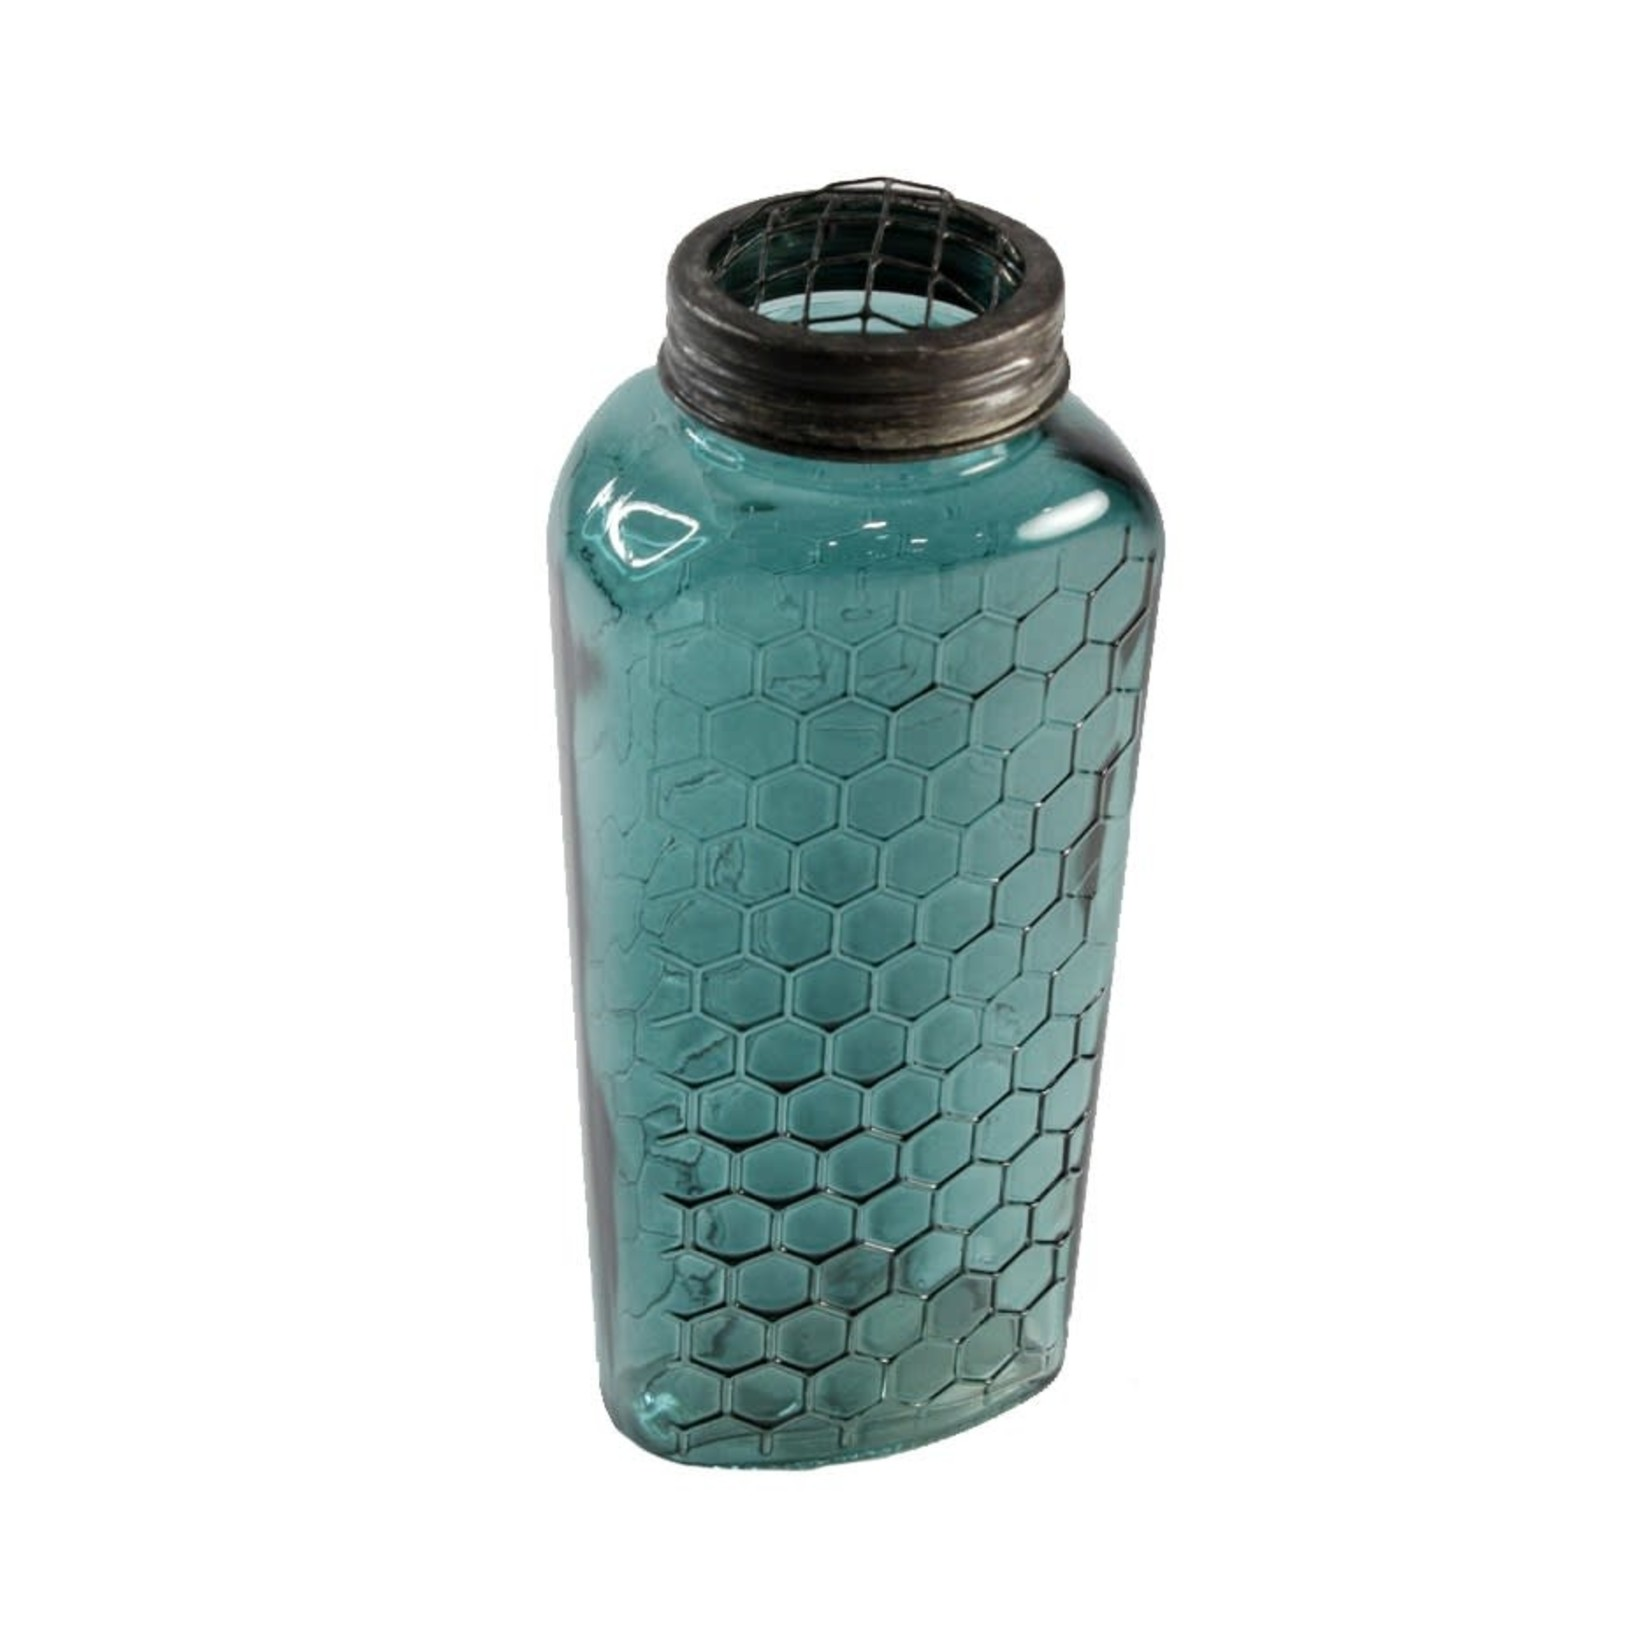 Turquoise Floral Glass Vase